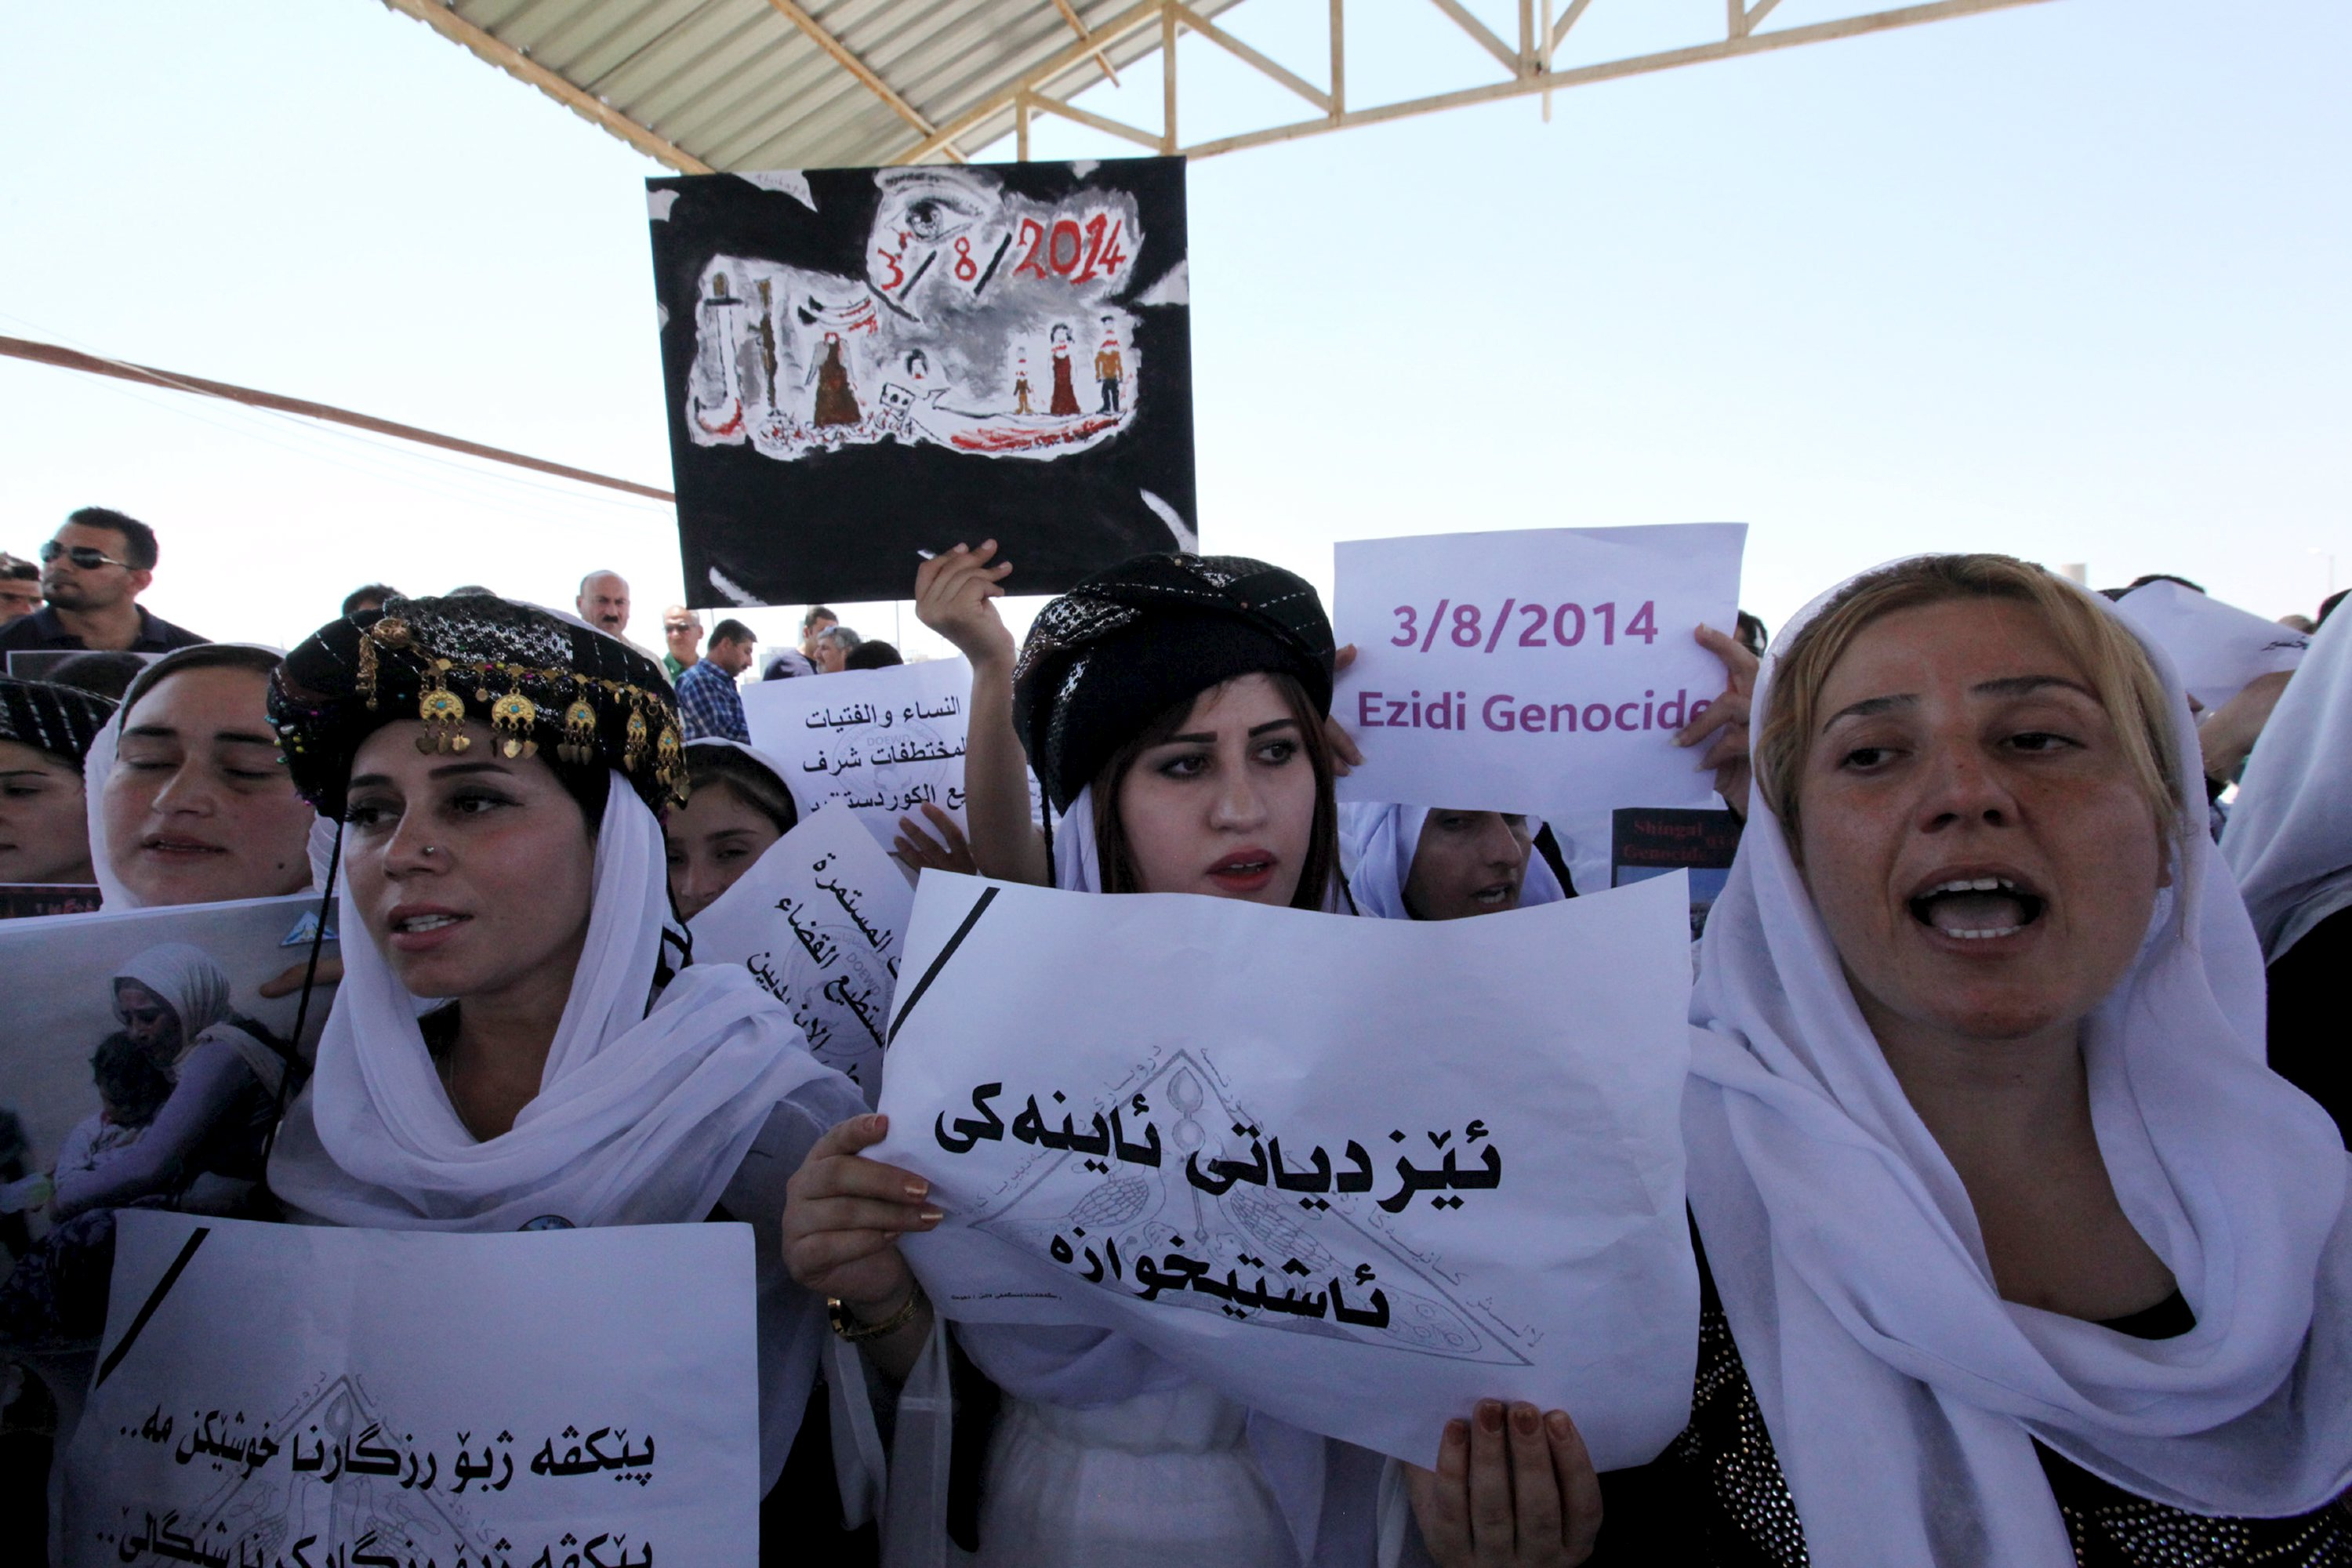 Displaced female demonstrators from the minority Yazidi sect gather during a protest outside the headquarters of the U.N. Mission in Iraq, August 2. Azad Lashkari / Reuters.